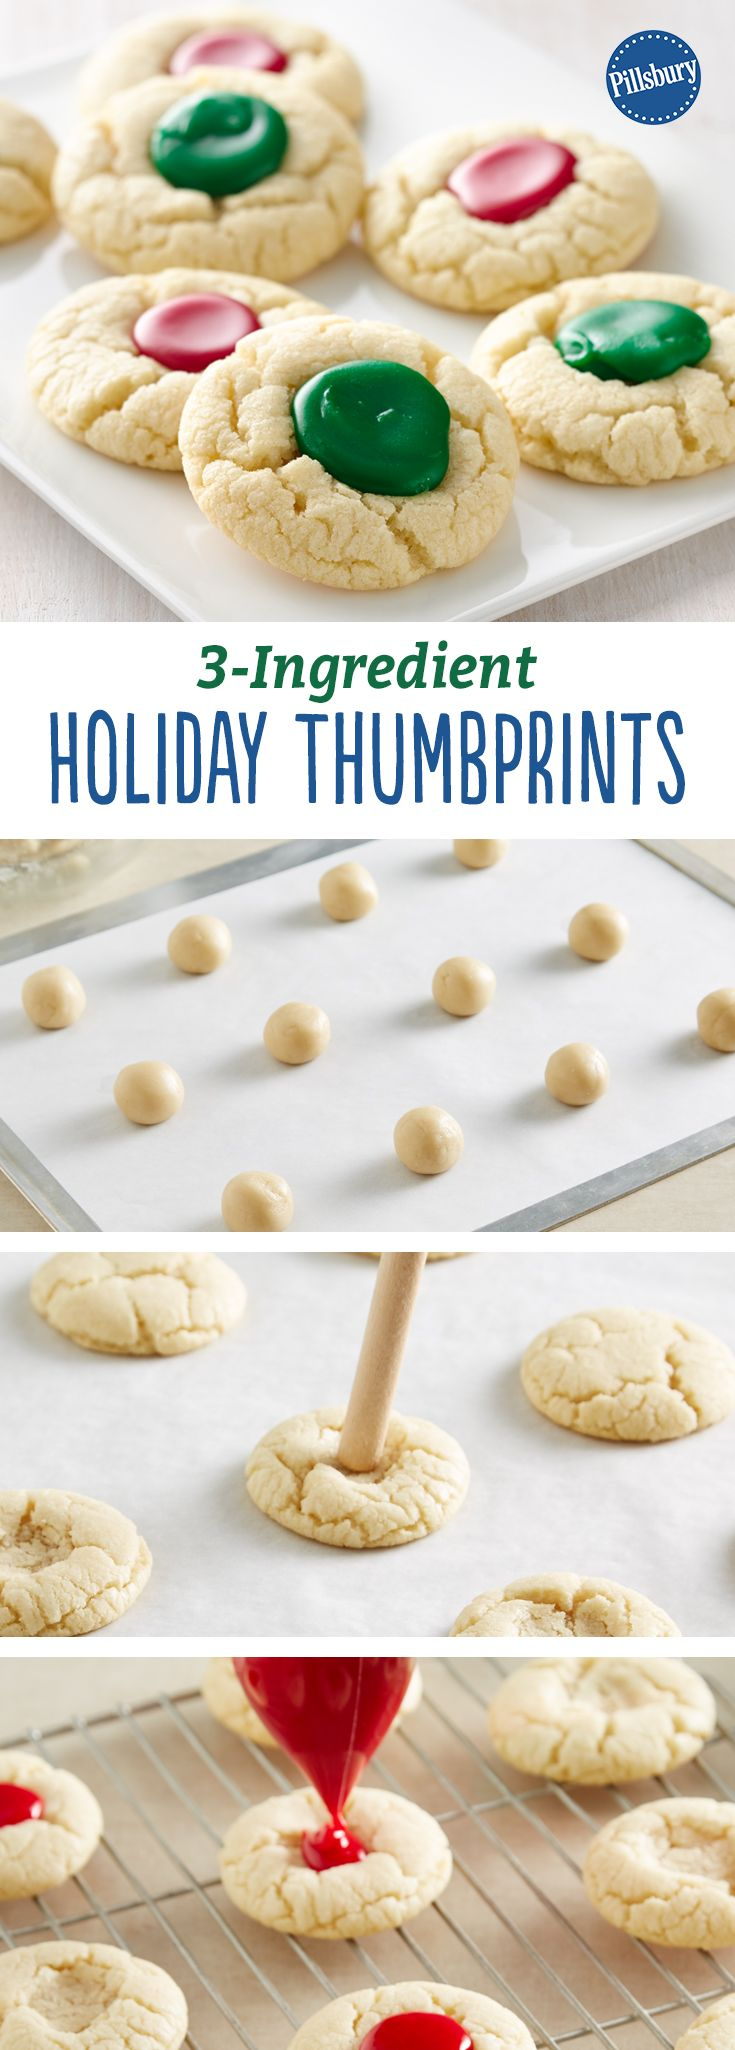 3 Ingredient Holiday Thumbprints Recipe Thumbprint Cookies Easy Cookies Recipes Christmas Christmas Baking